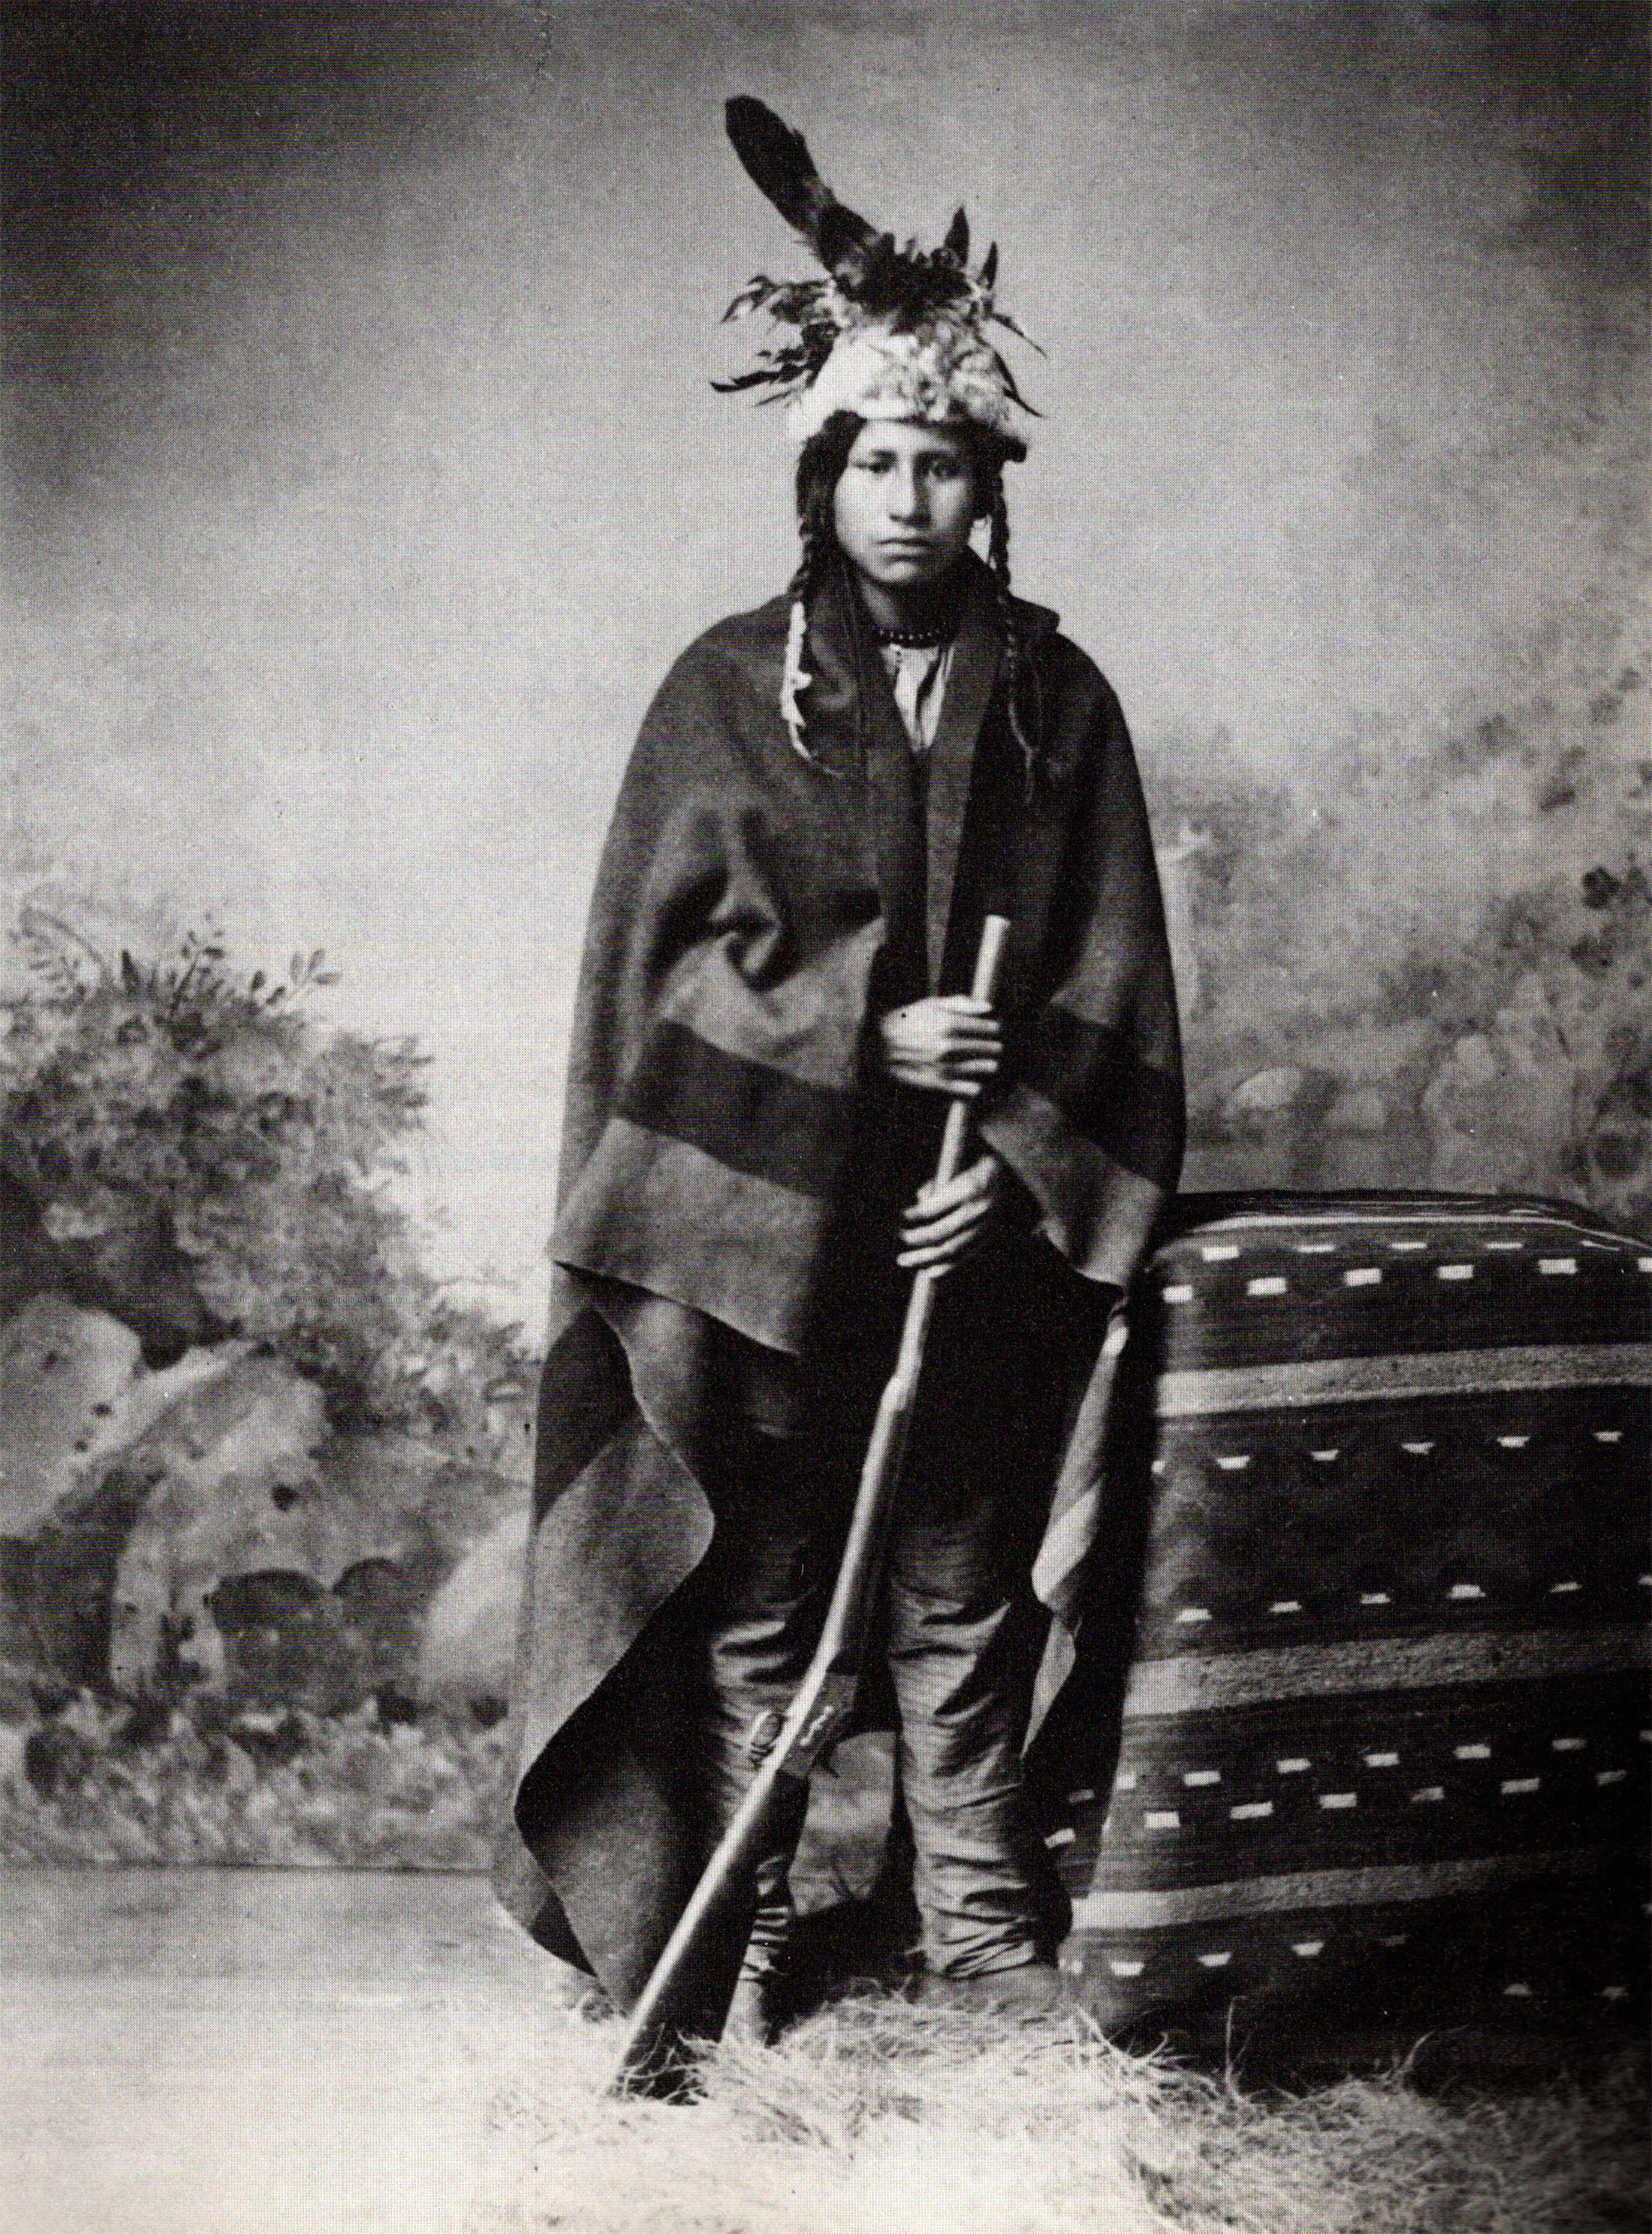 a posed black and white photo of a Native American wearing a headdress and holding a rifle